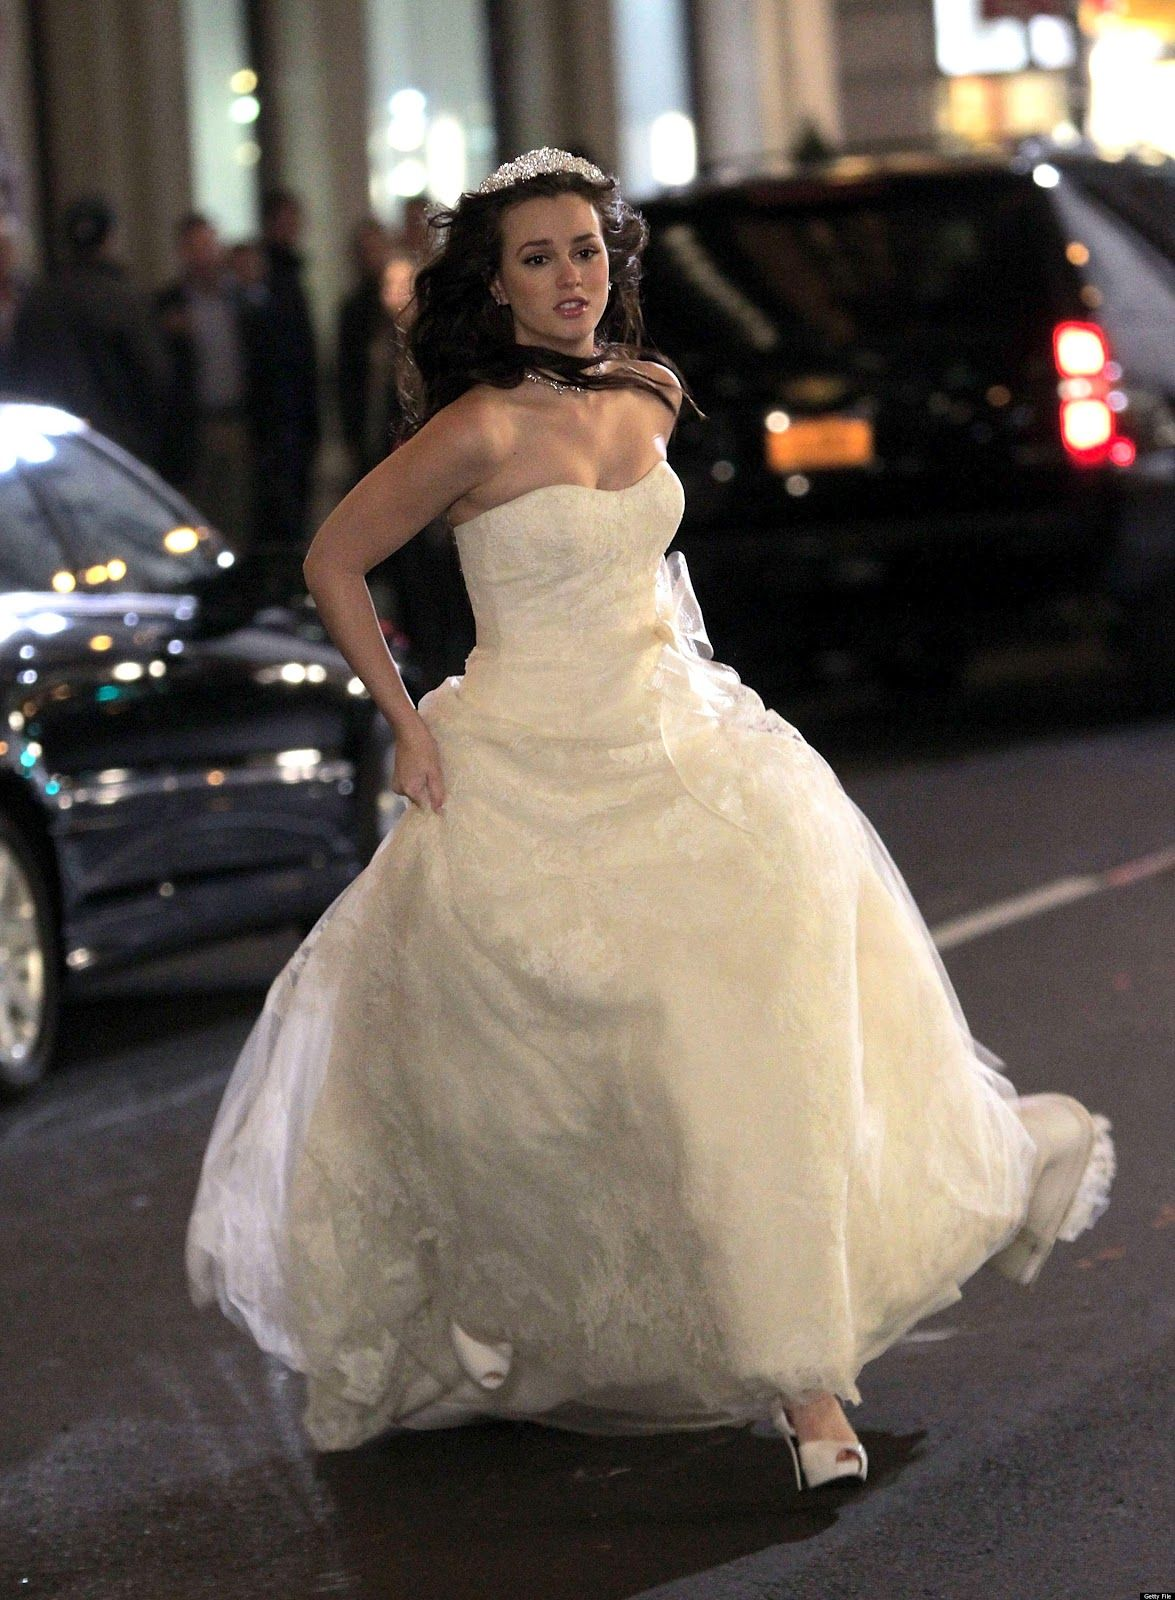 Blair waldorf wedding dress  Are you getting married or are you just curious about the latest